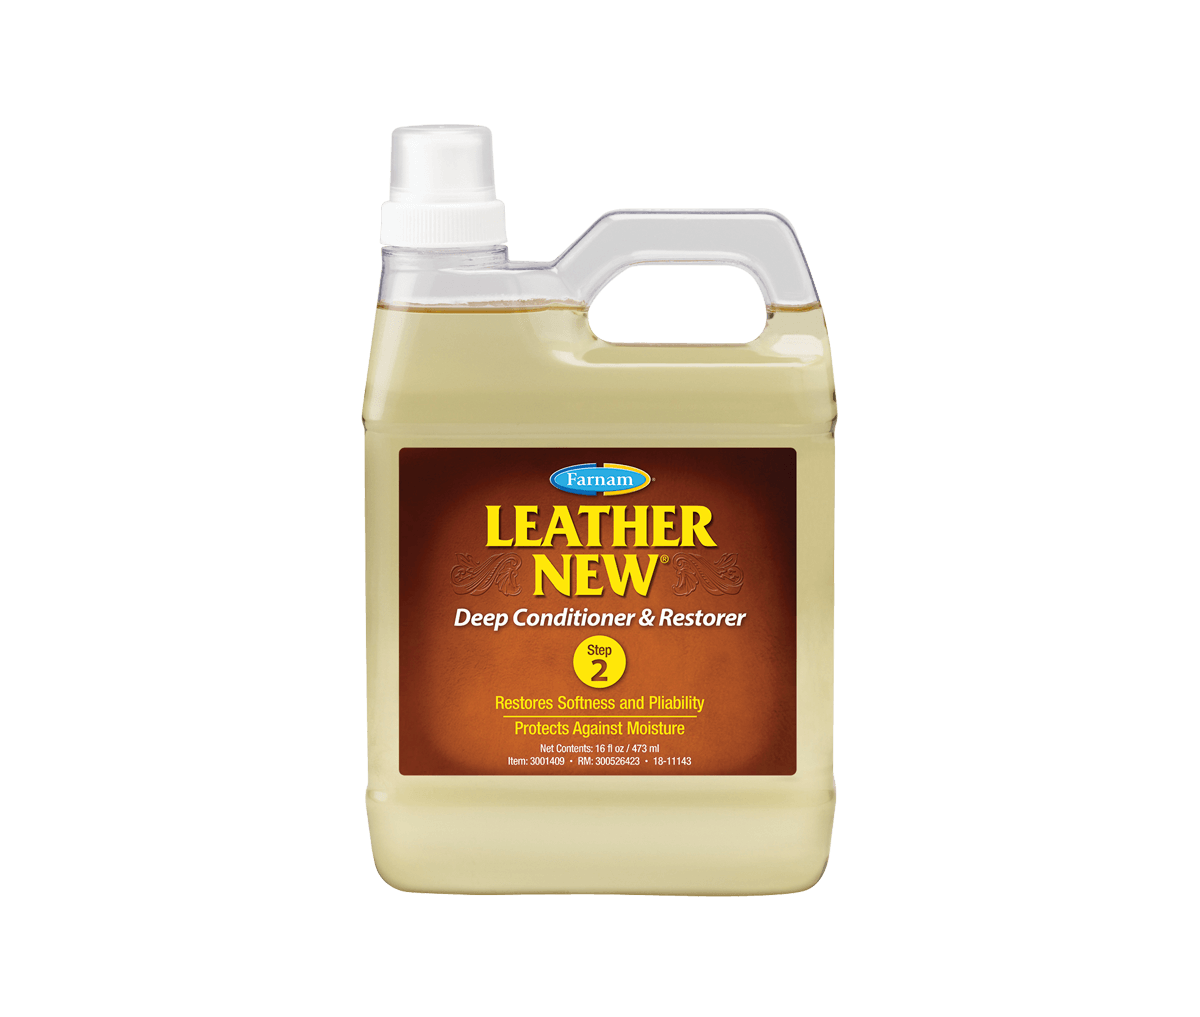 leather new deep conditioner and restorer